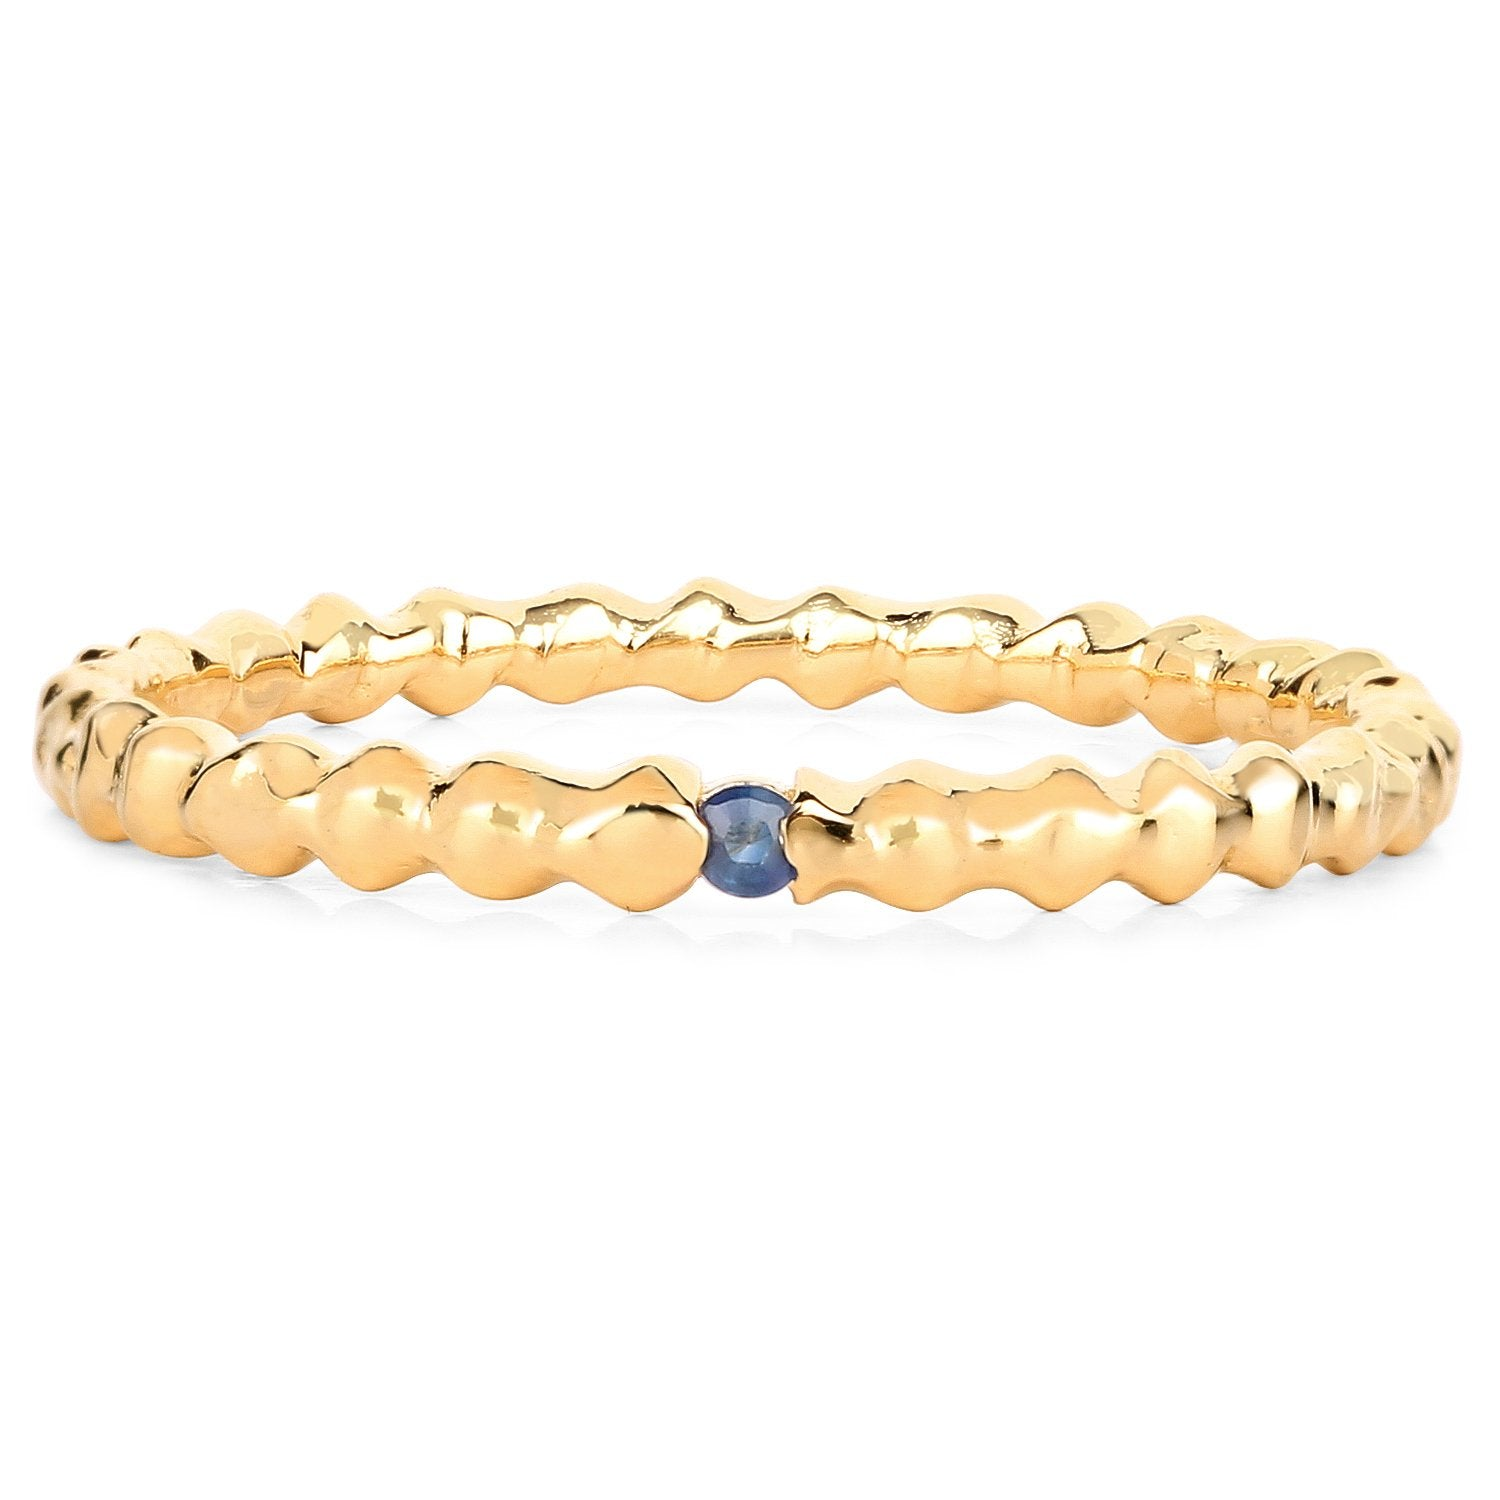 LoveHuang 0.03 Carats Genuine Blue Sapphire Stacking Ring Solid .925 Sterling Silver With 18KT Yellow Gold Plating